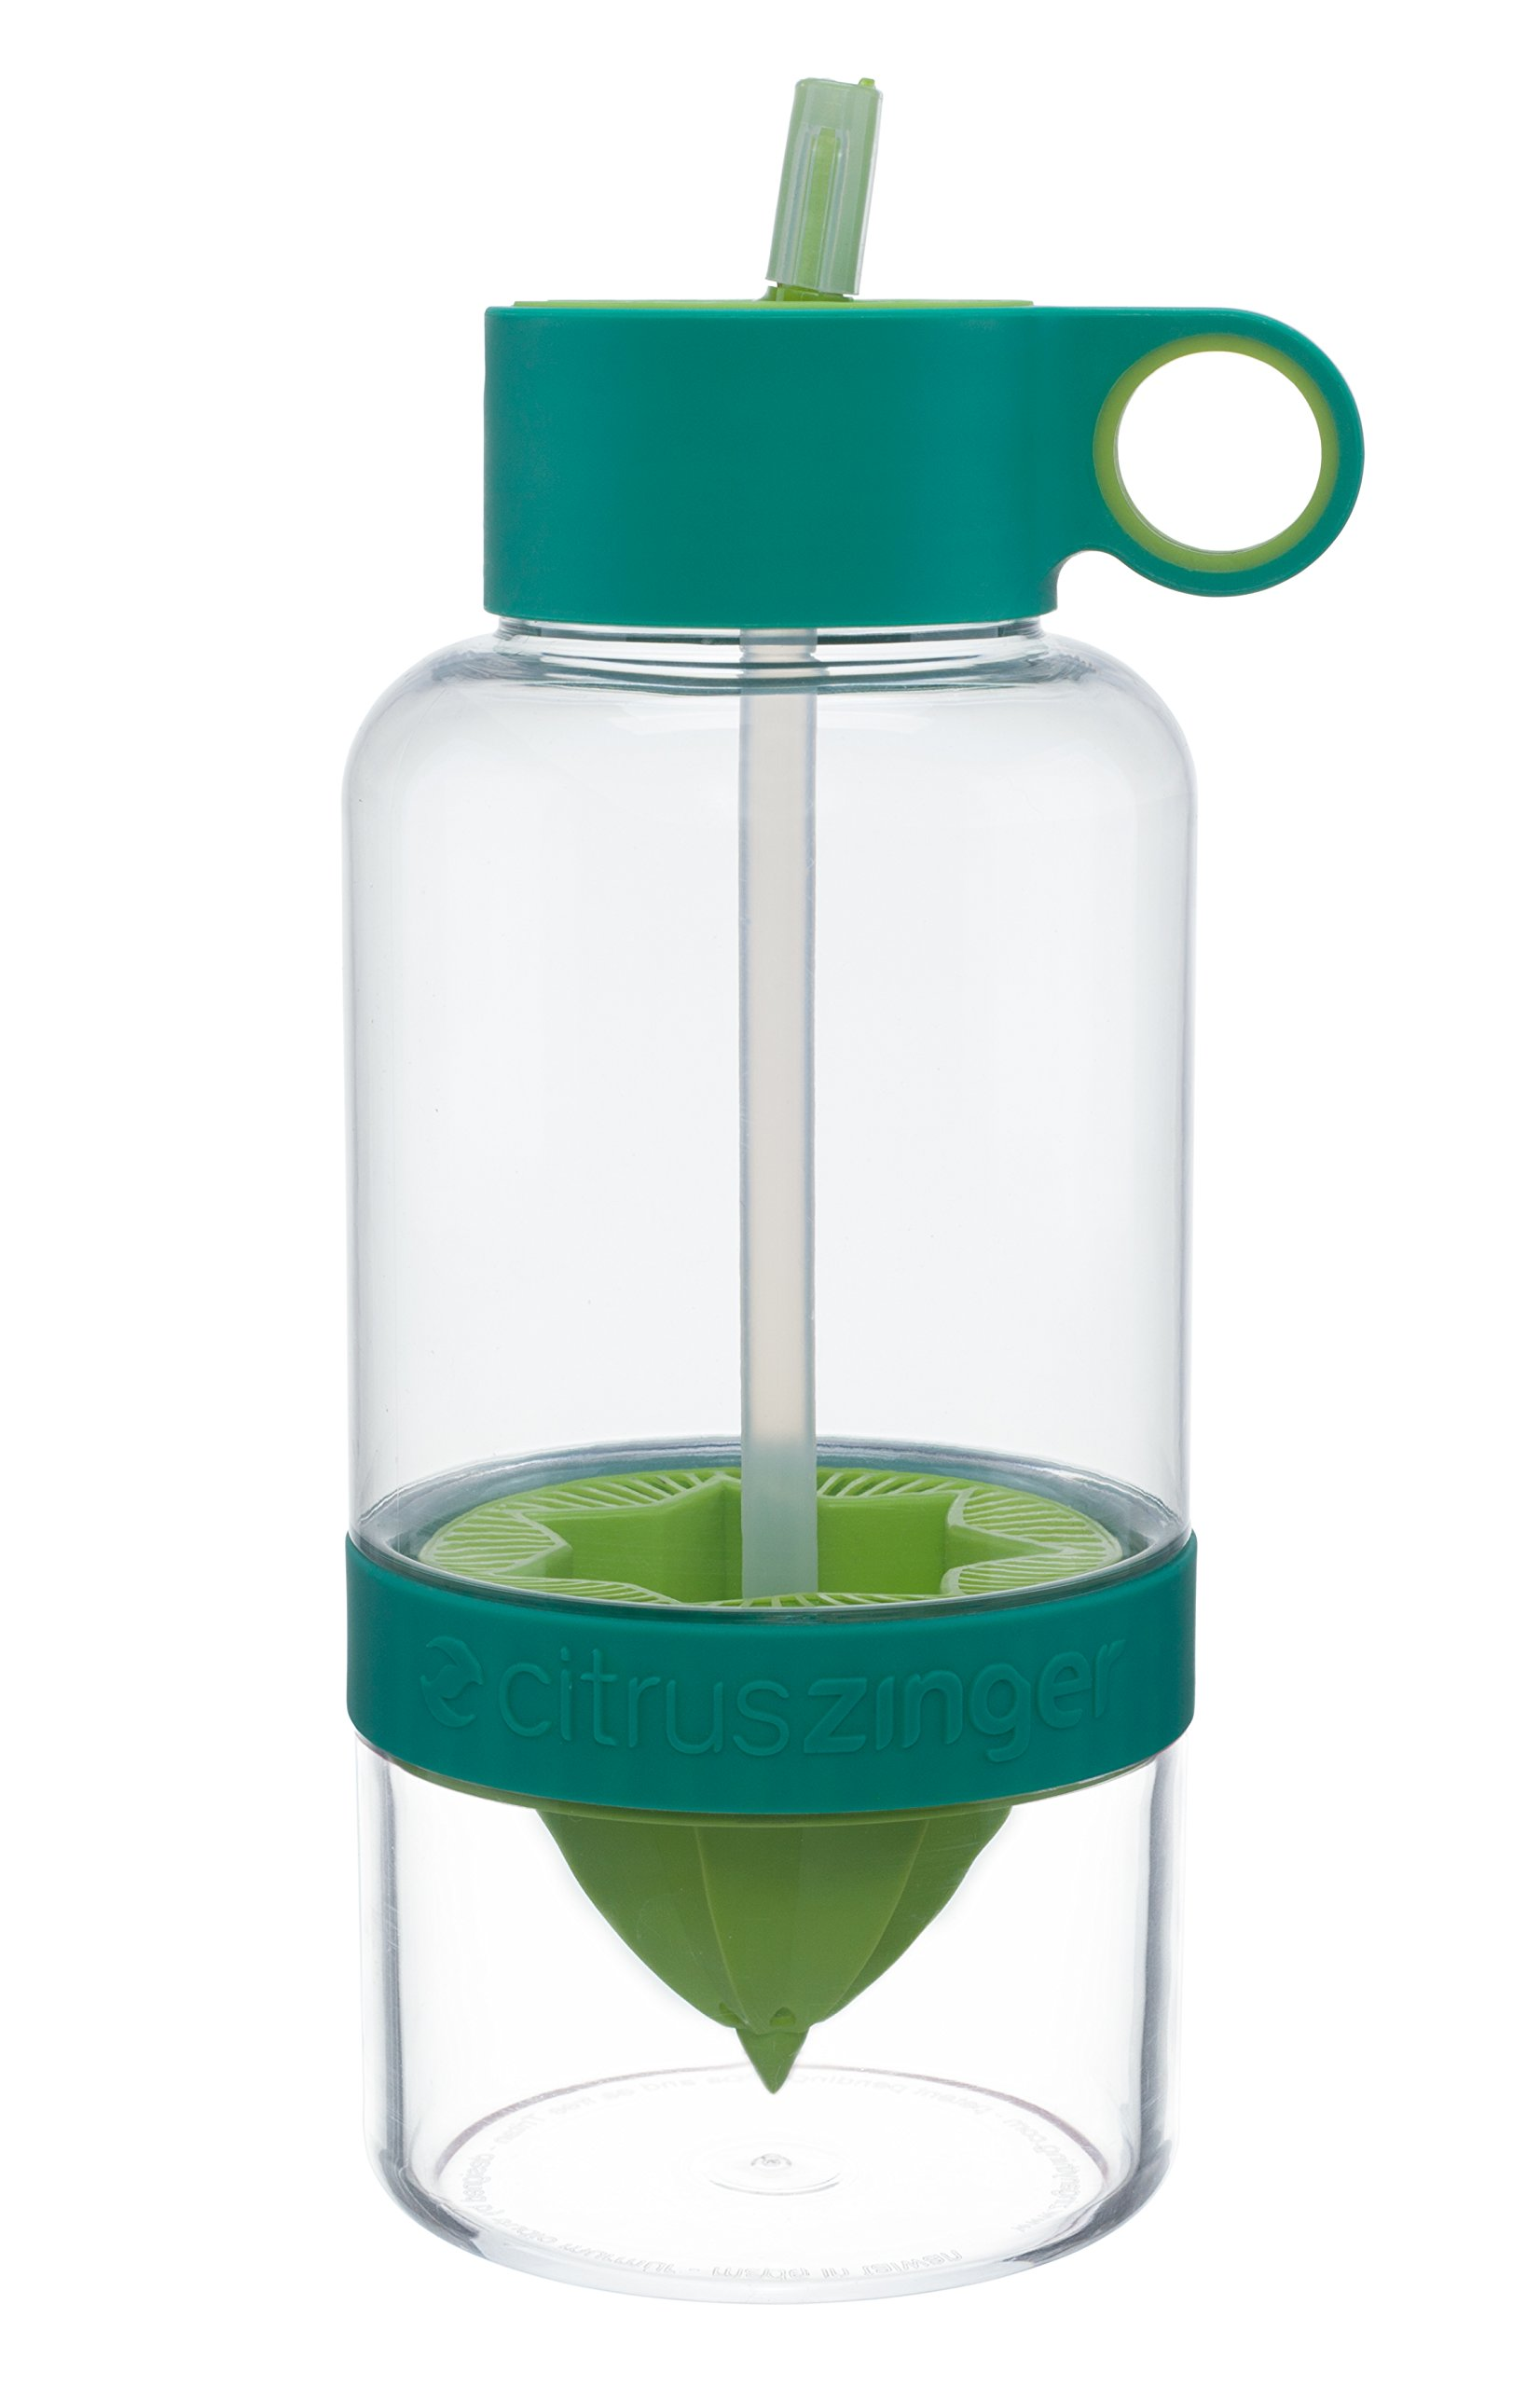 Citrus Zinger Biggie by Zing Anything, Active Infusion Water Bottle, Citrus Fruit Infusion, BPA EA free Tritan, Reusable Water Bottle, Hydration, Infusion Technology, Flip Up Straw Cap, 36 oz., Green